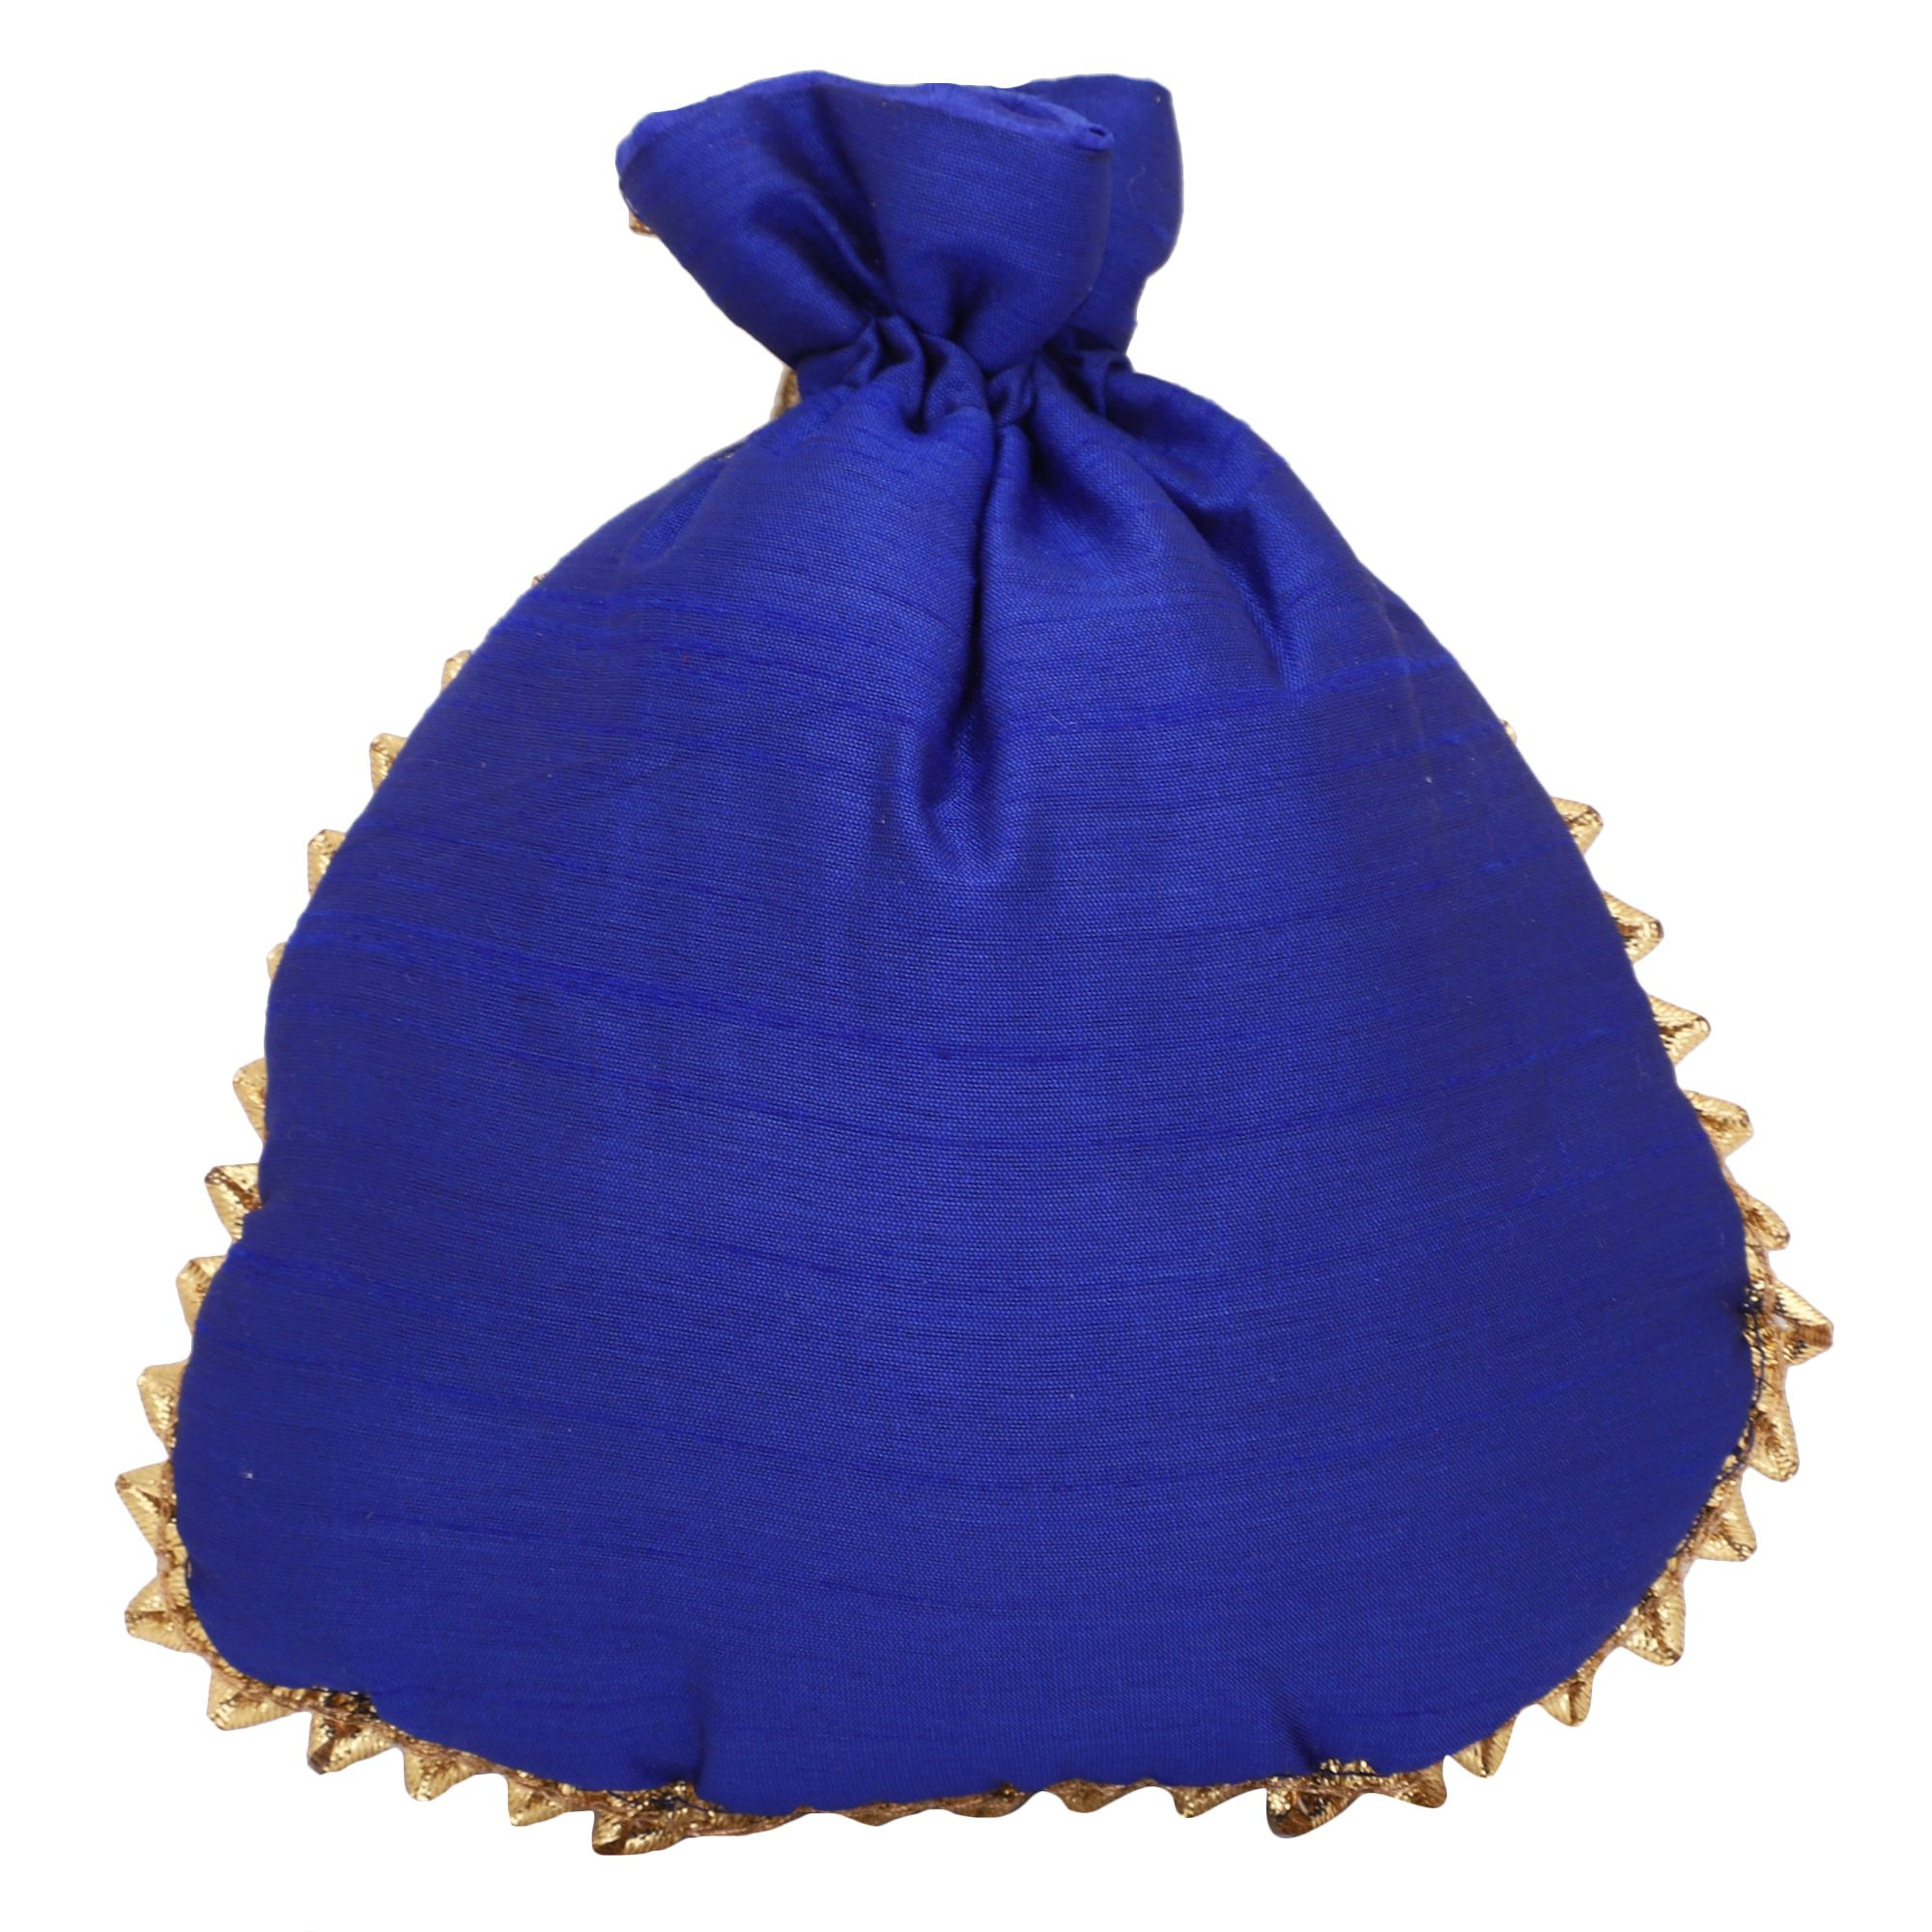 Dupion Silk Gotapatti Potli Bag in Royal Blue 2